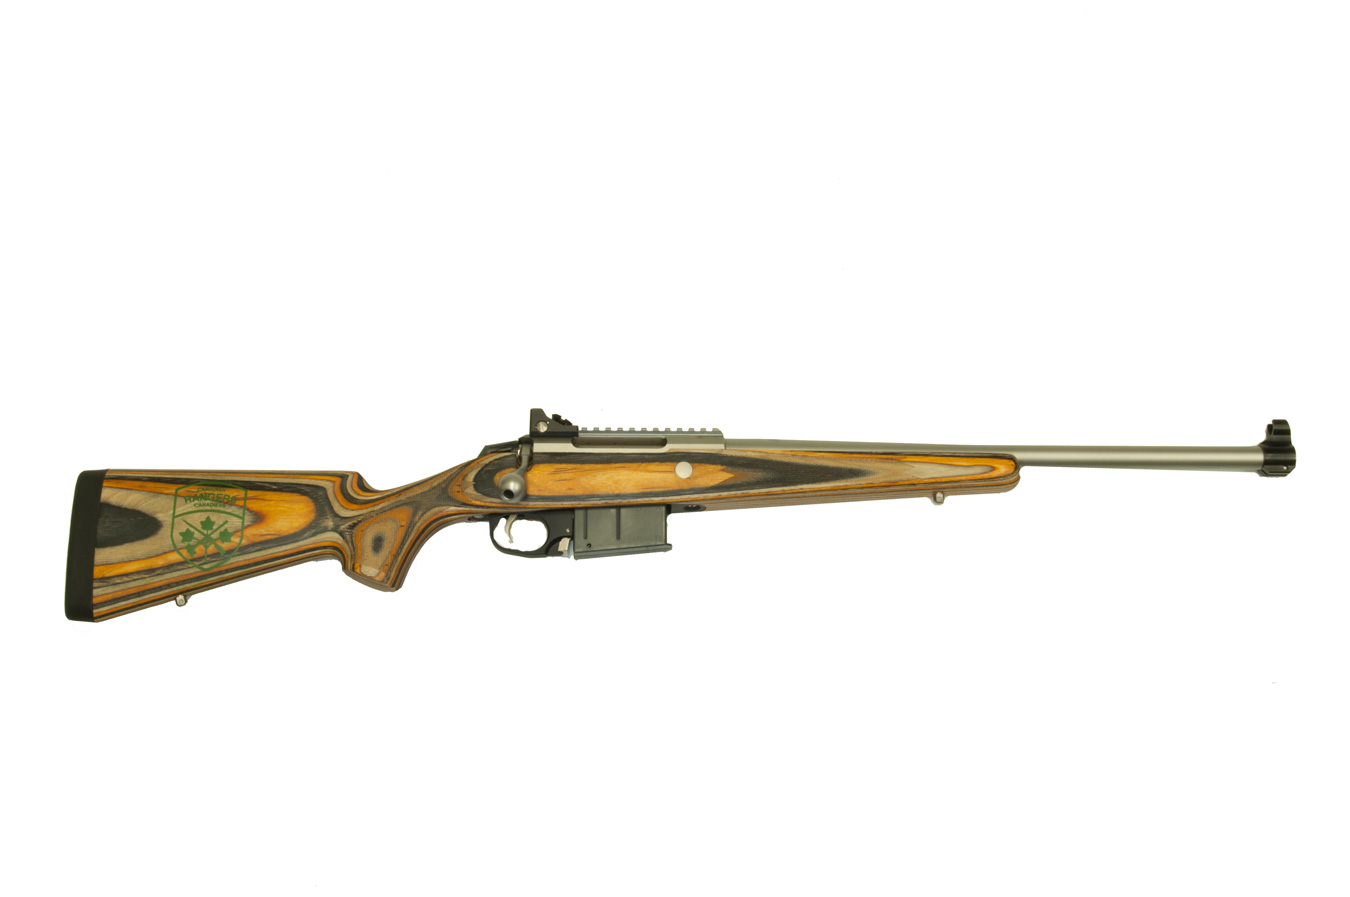 The SAKO 10-shot .308 bolt action rifle